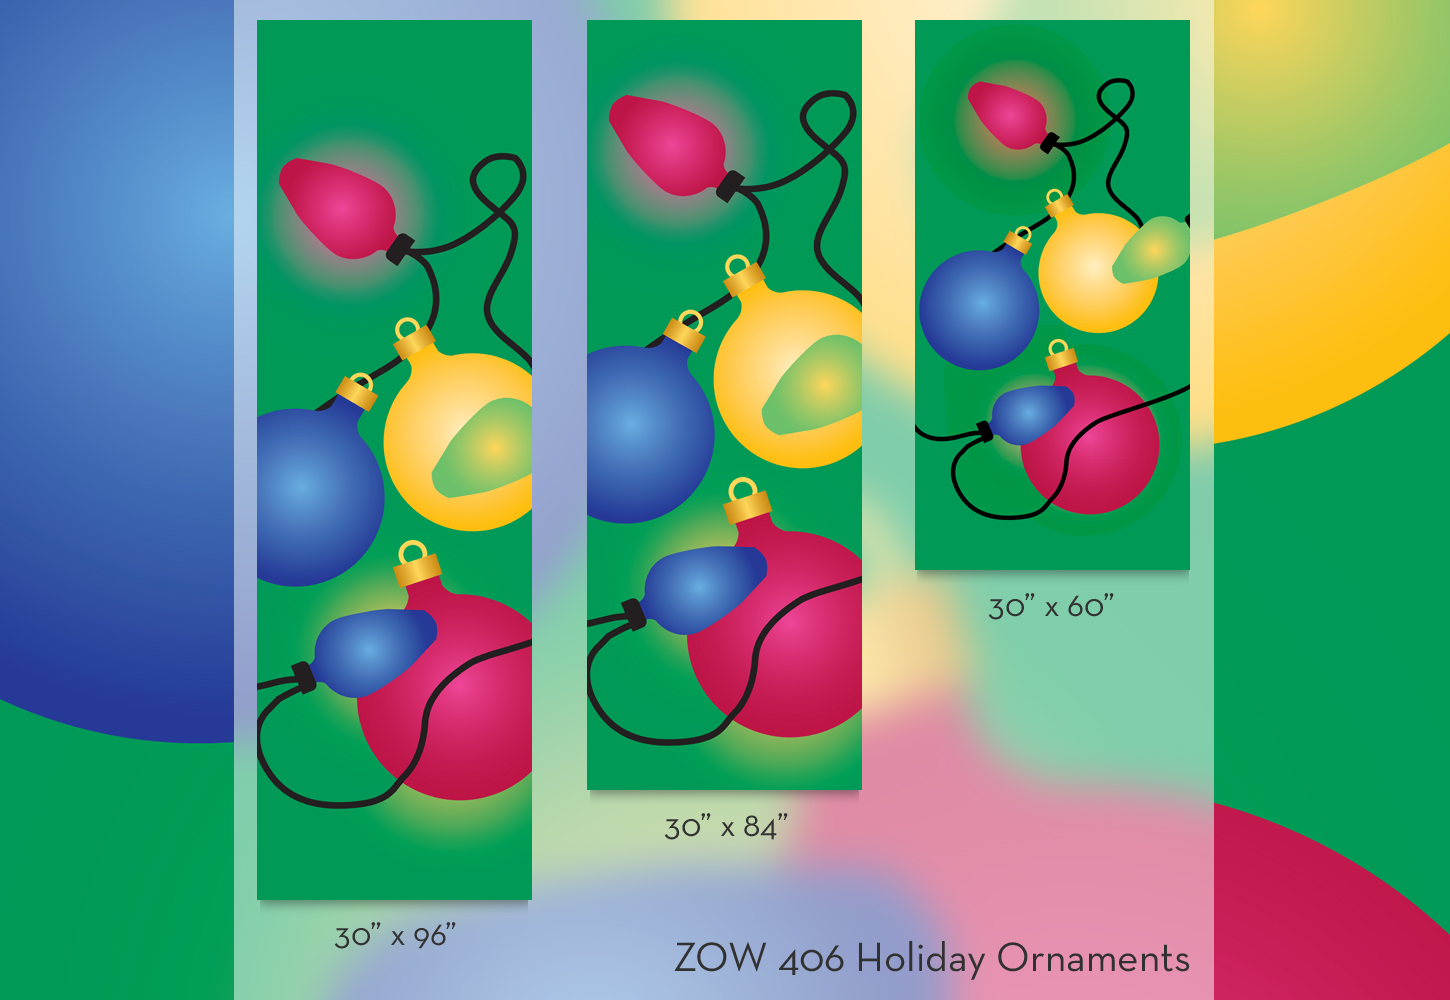 ZOW 406 Holiday Ornaments